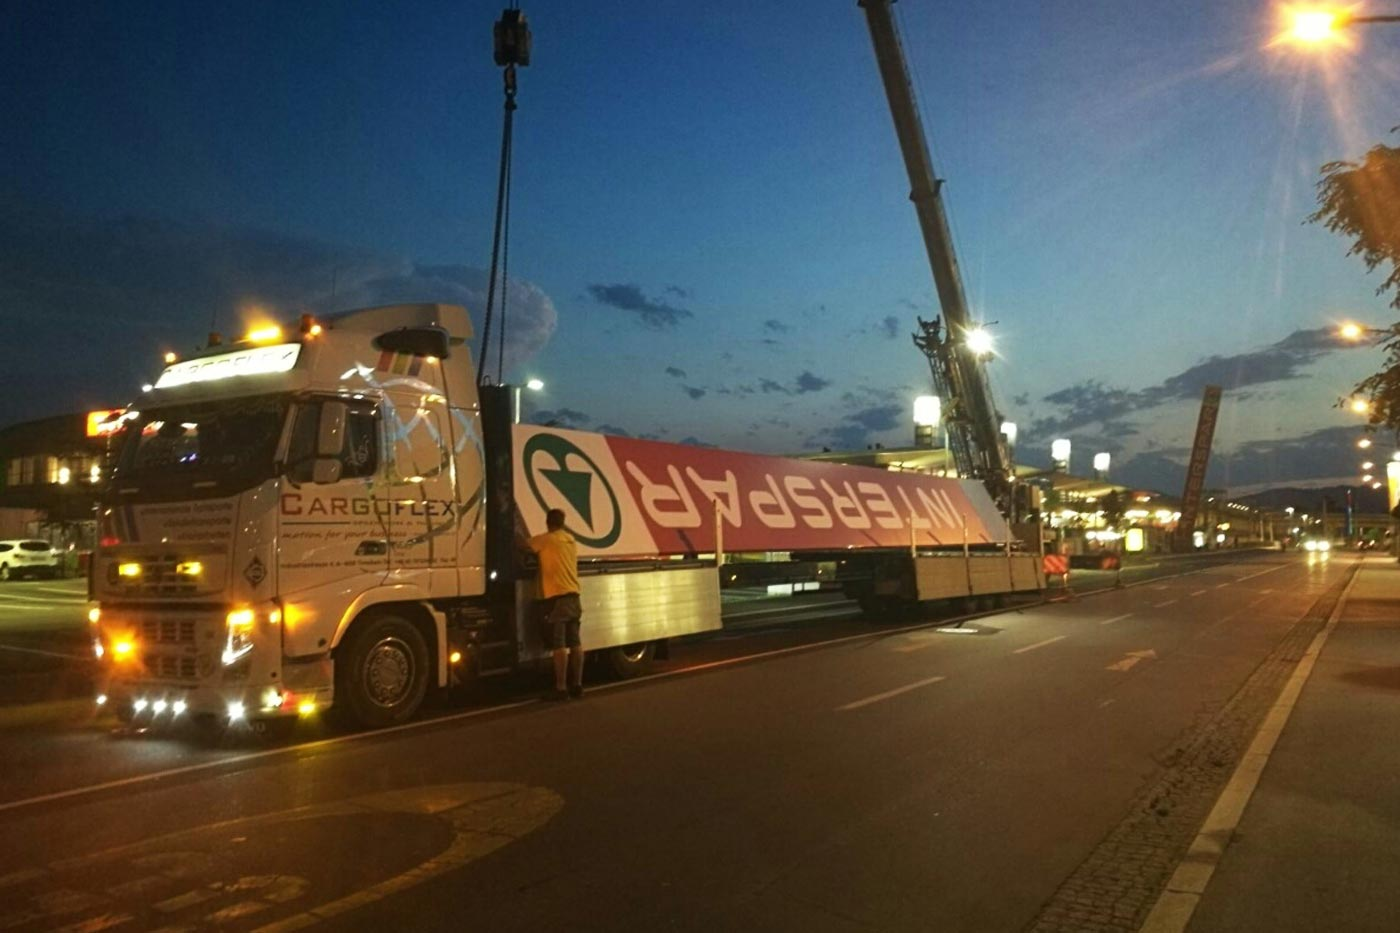 cargoflex-sondertransport-interspar-02